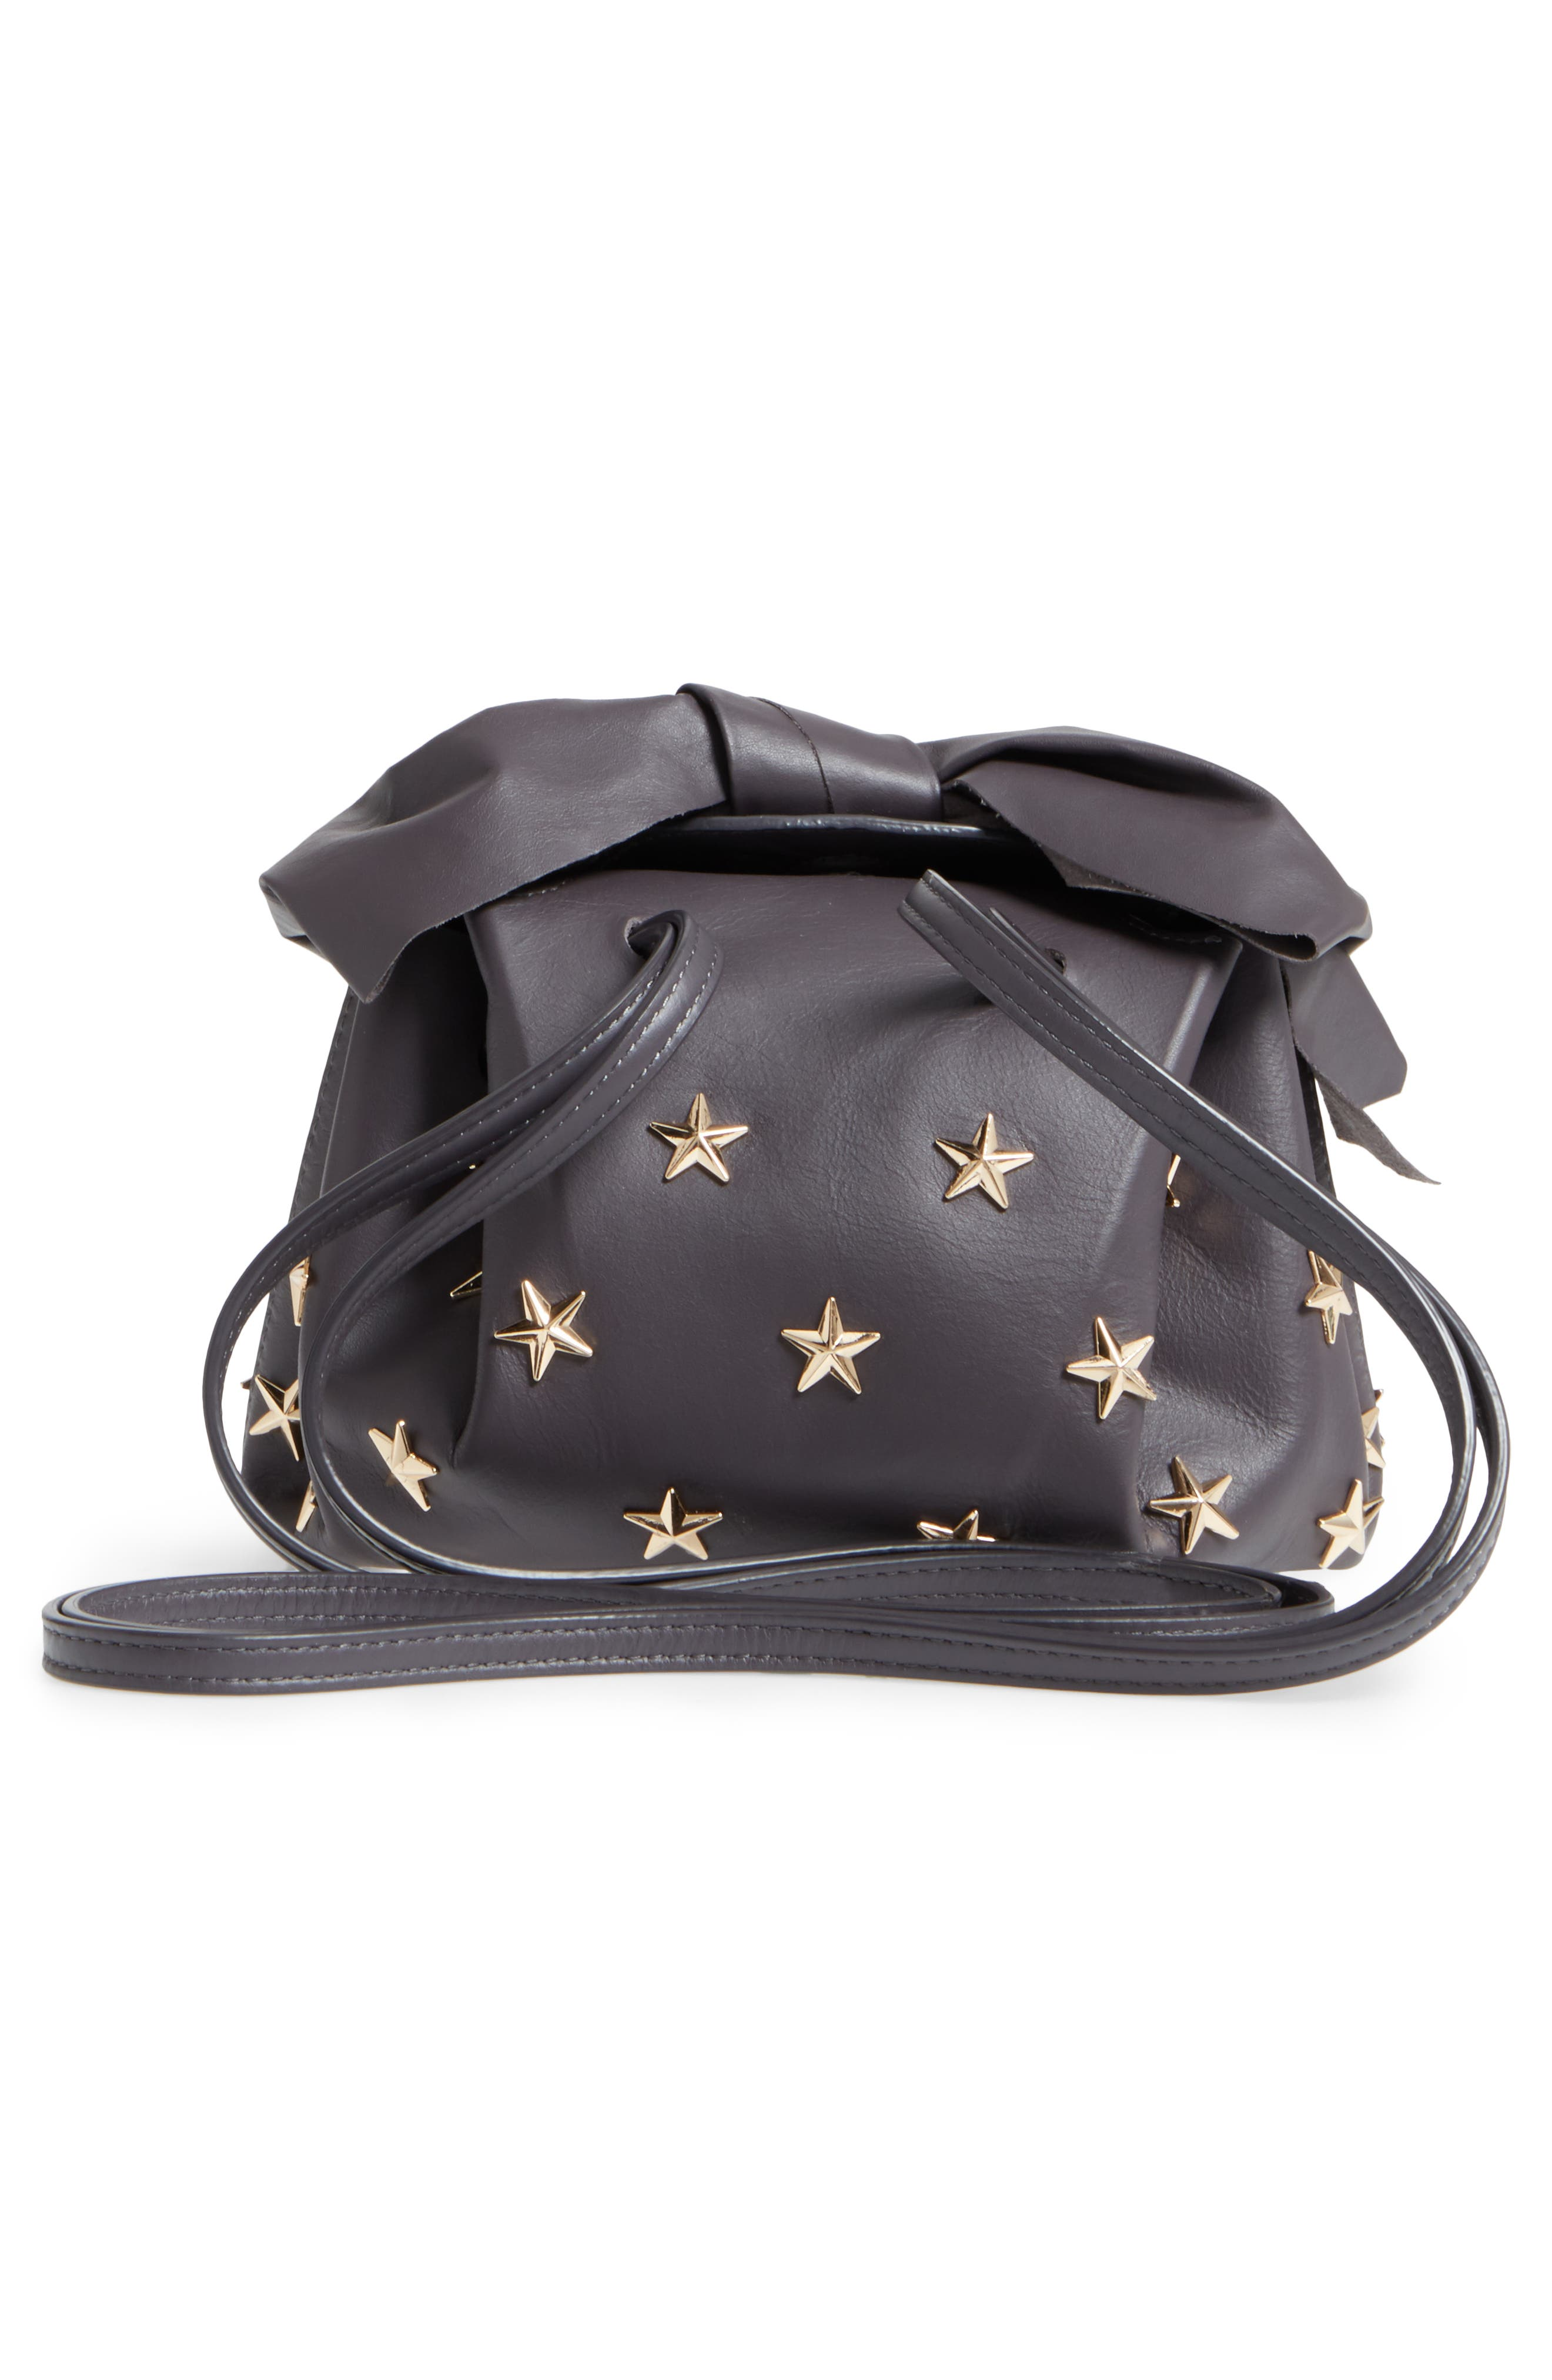 Soirée Star Stud Leather Crossbody Bag,                             Alternate thumbnail 3, color,                             Shadow